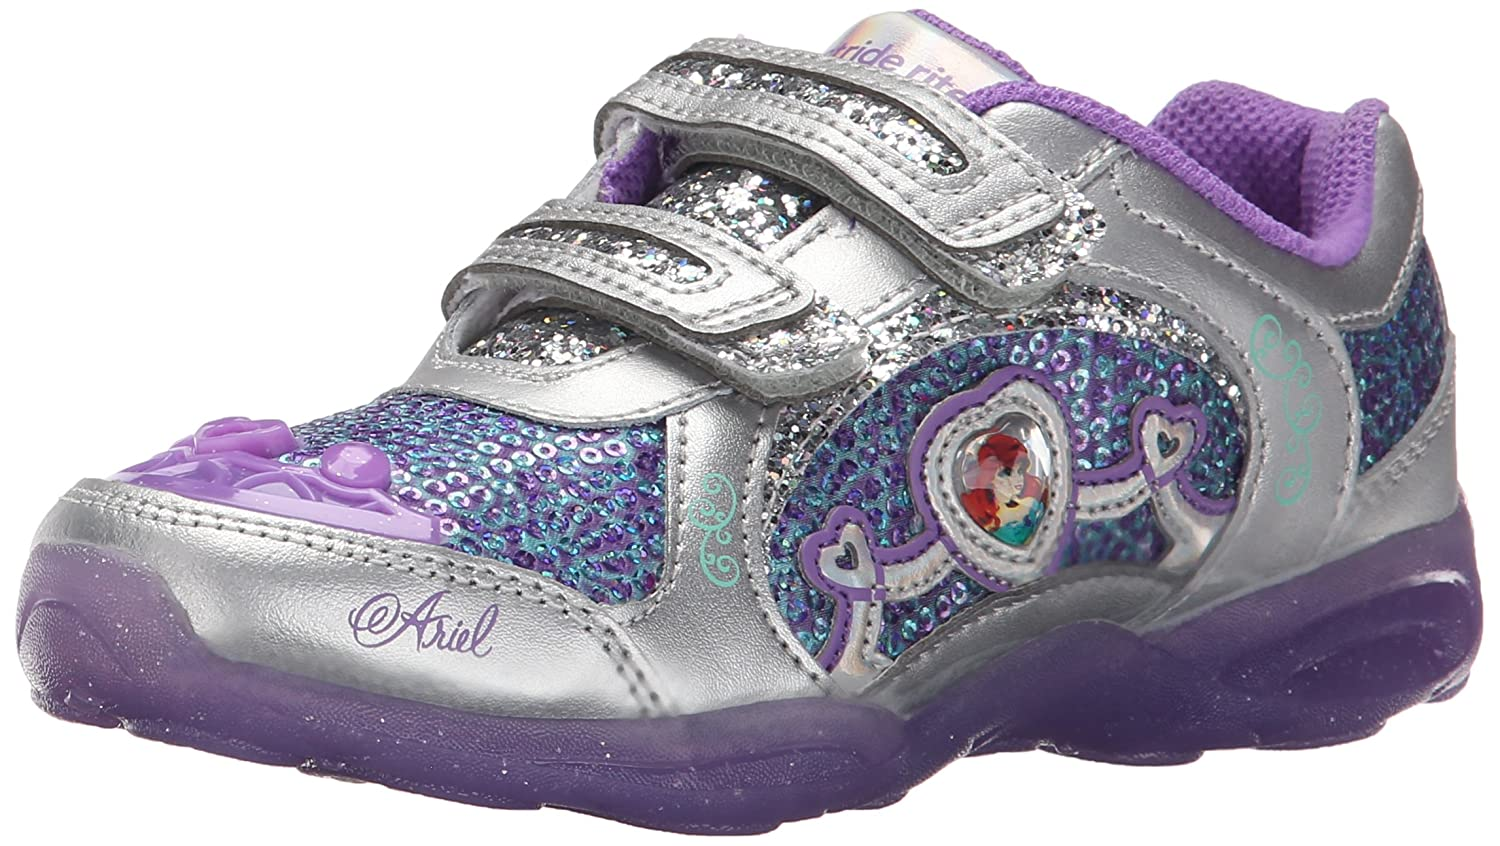 Kids Shoes When You Jump They Light Up